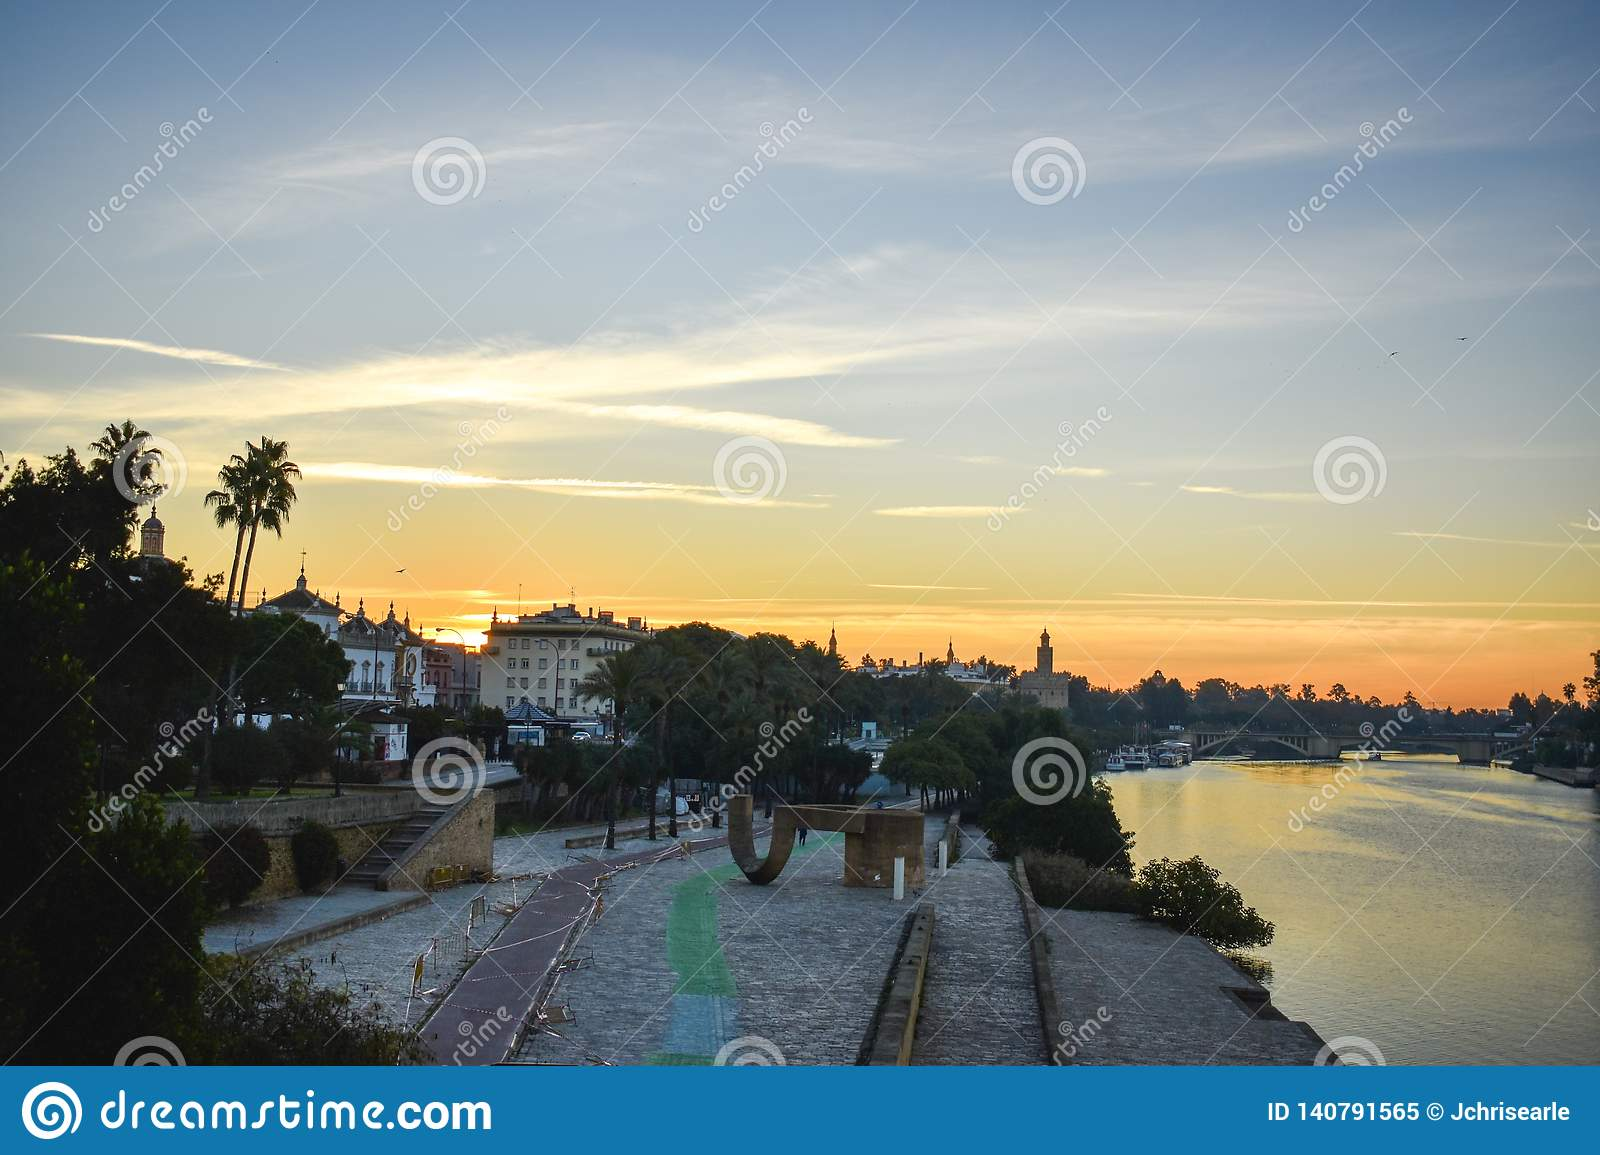 A touch of sunrise over the Guadalquivir river in Seville, Spain